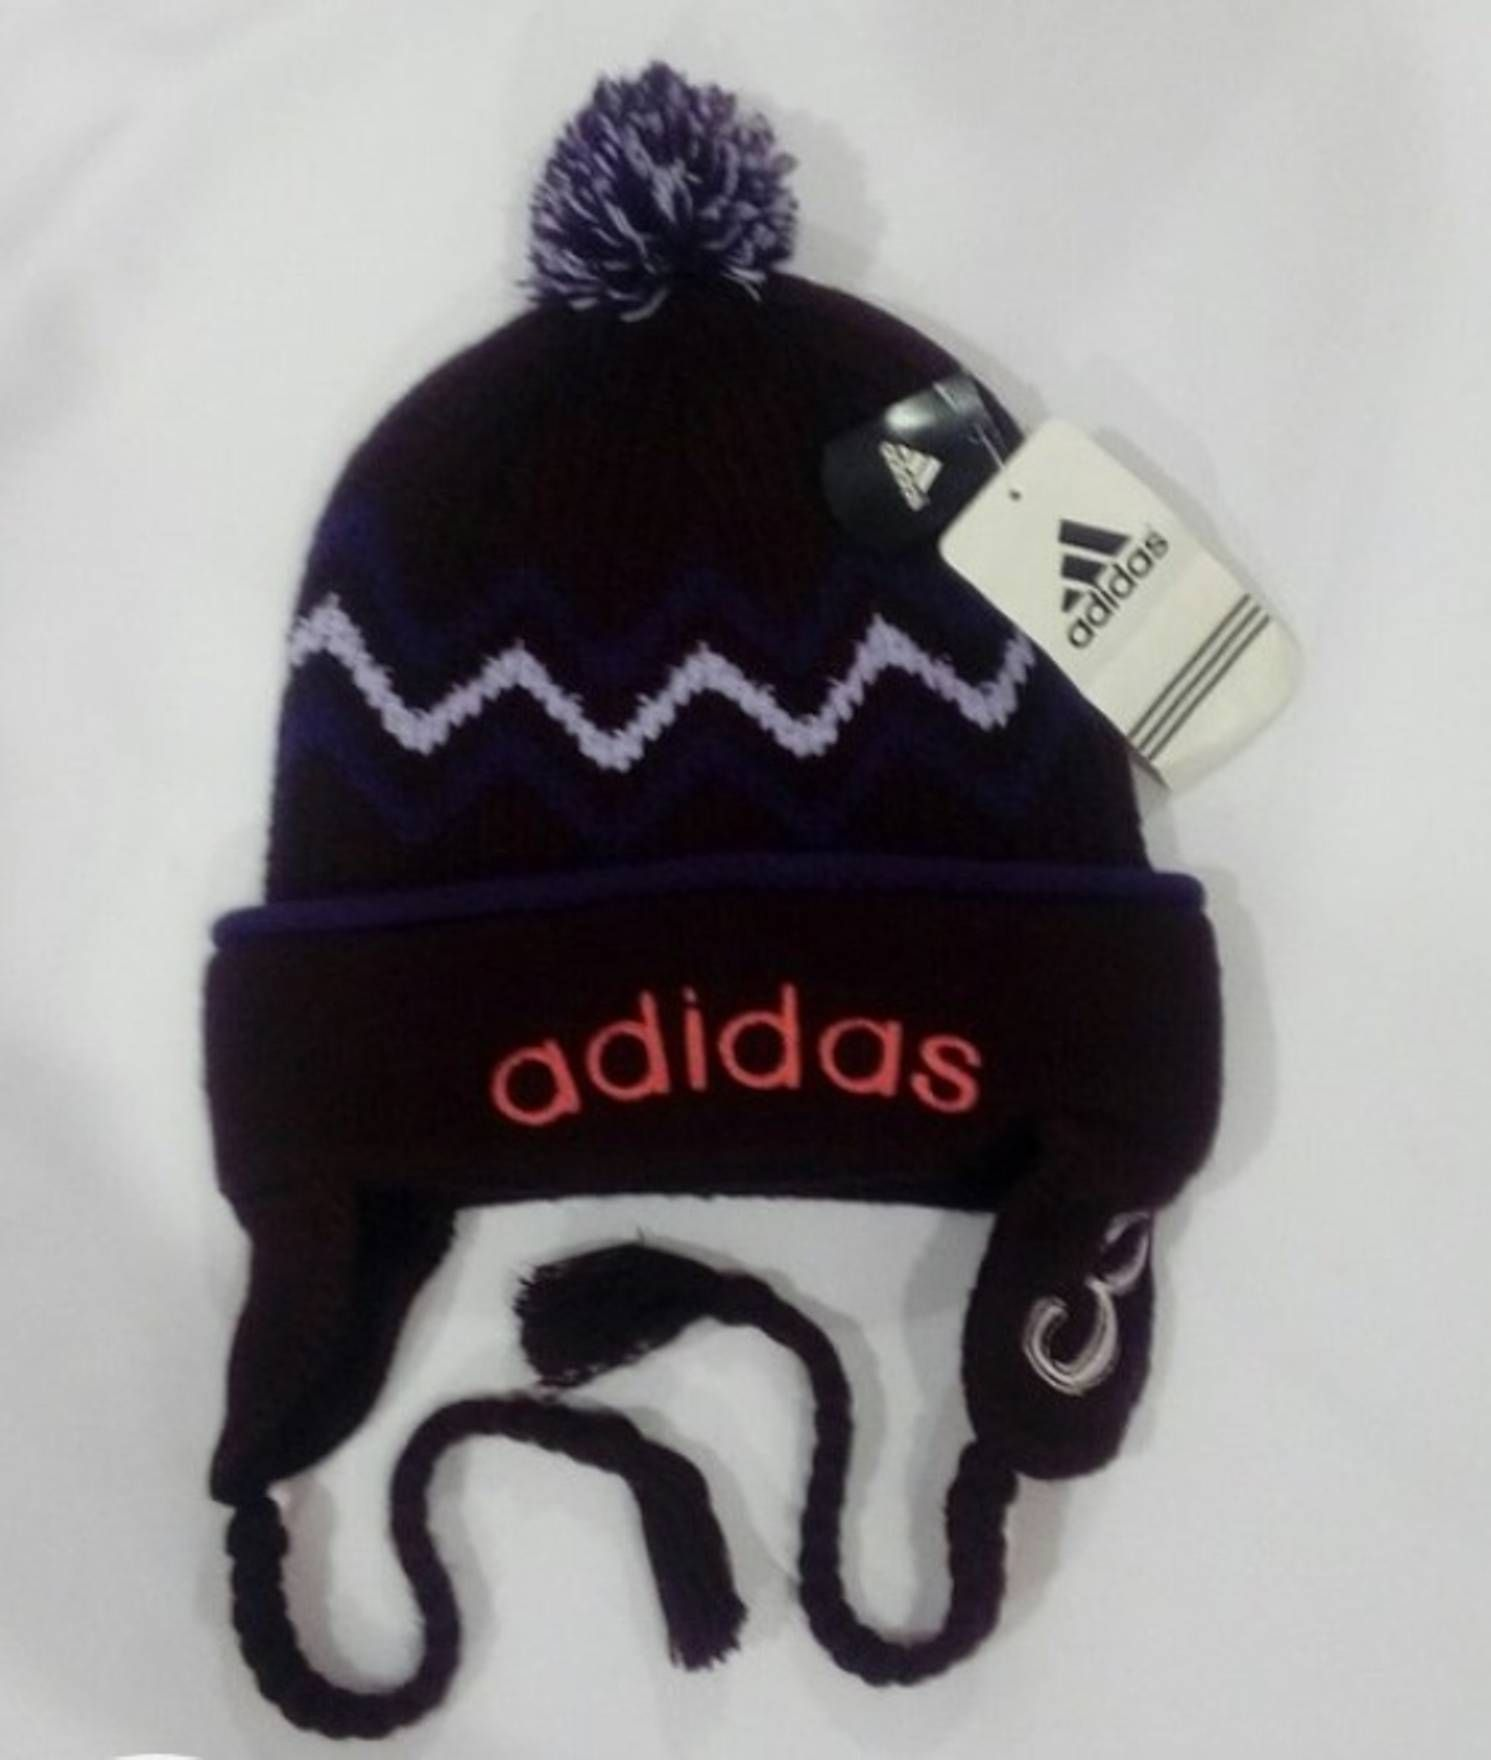 72f2fc1f91a Adidas Vintage adidas hats ear cover deadstock.big logo embroidery..very  good condition